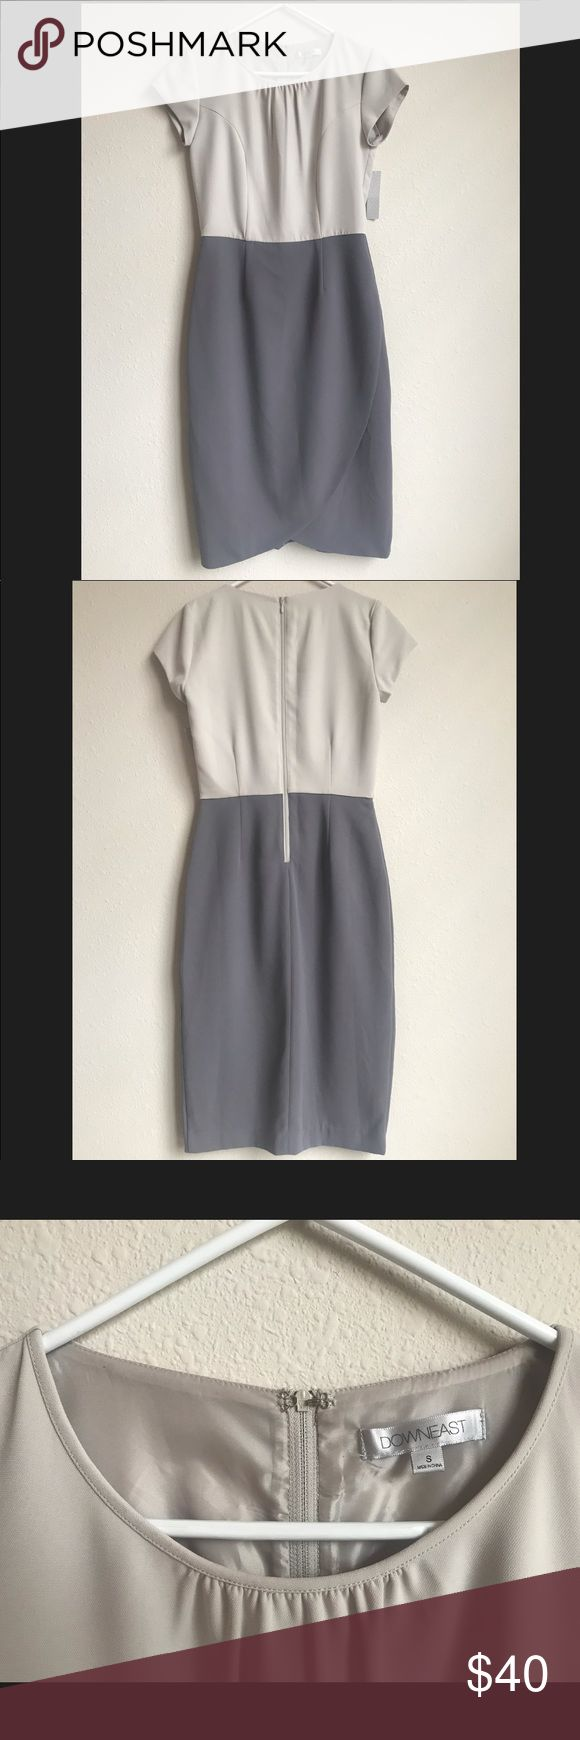 Downeast formal dress Beautiful grey and silver formal knee length dress.  The fabric of the dress is very nice and it can be worn in any formal occasion. Size S Brand new never been worn!! open to offers! 😊 downeast Dresses